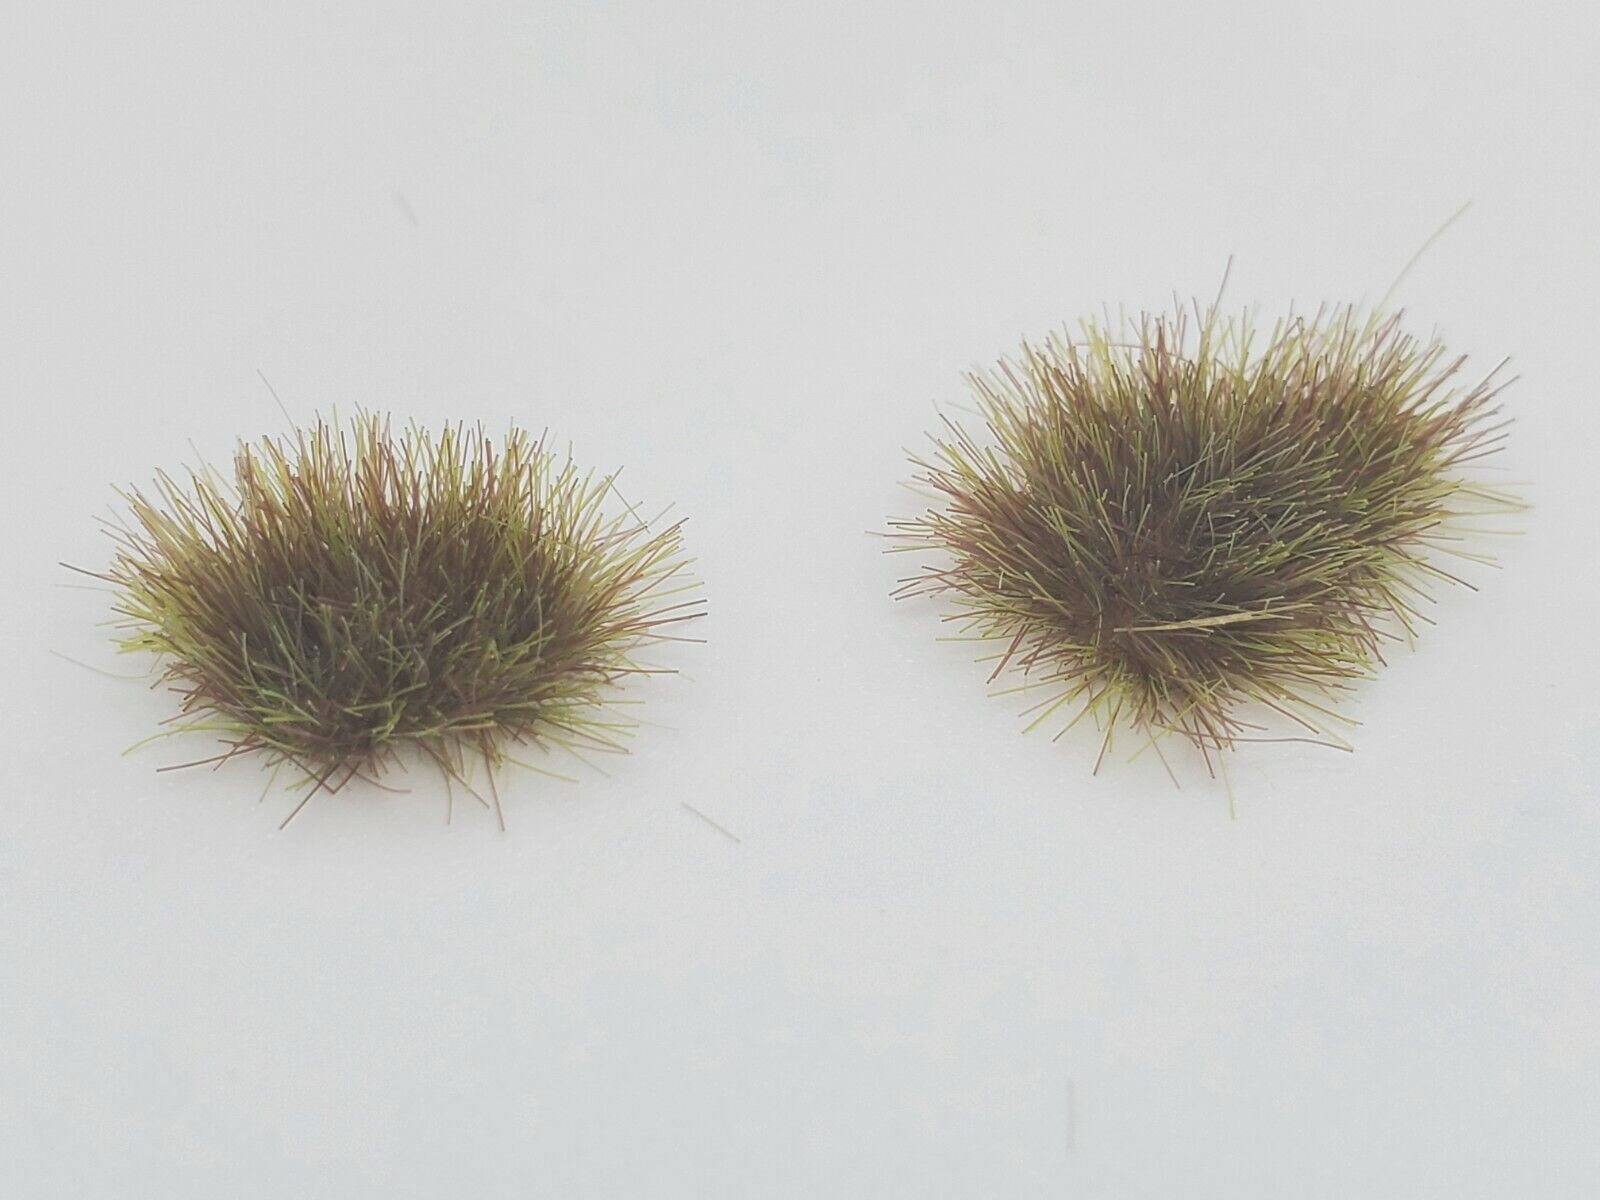 Self Adhesive Static Grass Tufts- Miniature Scenery/Terrain-Dry Steppe Grass  2